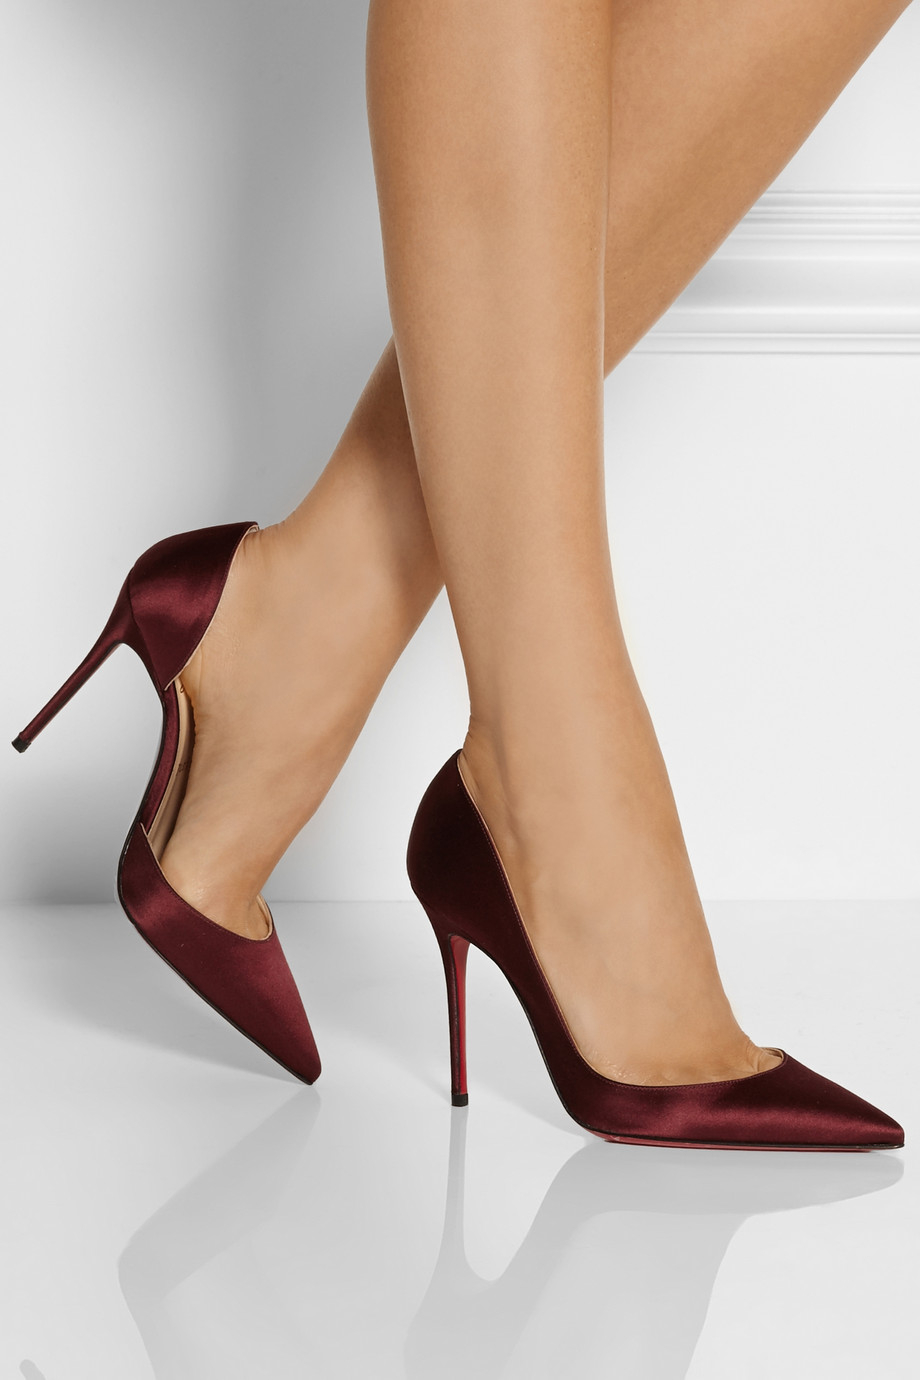 Christian louboutin Iriza 100 Satin D'Orsay Pumps in Red ...